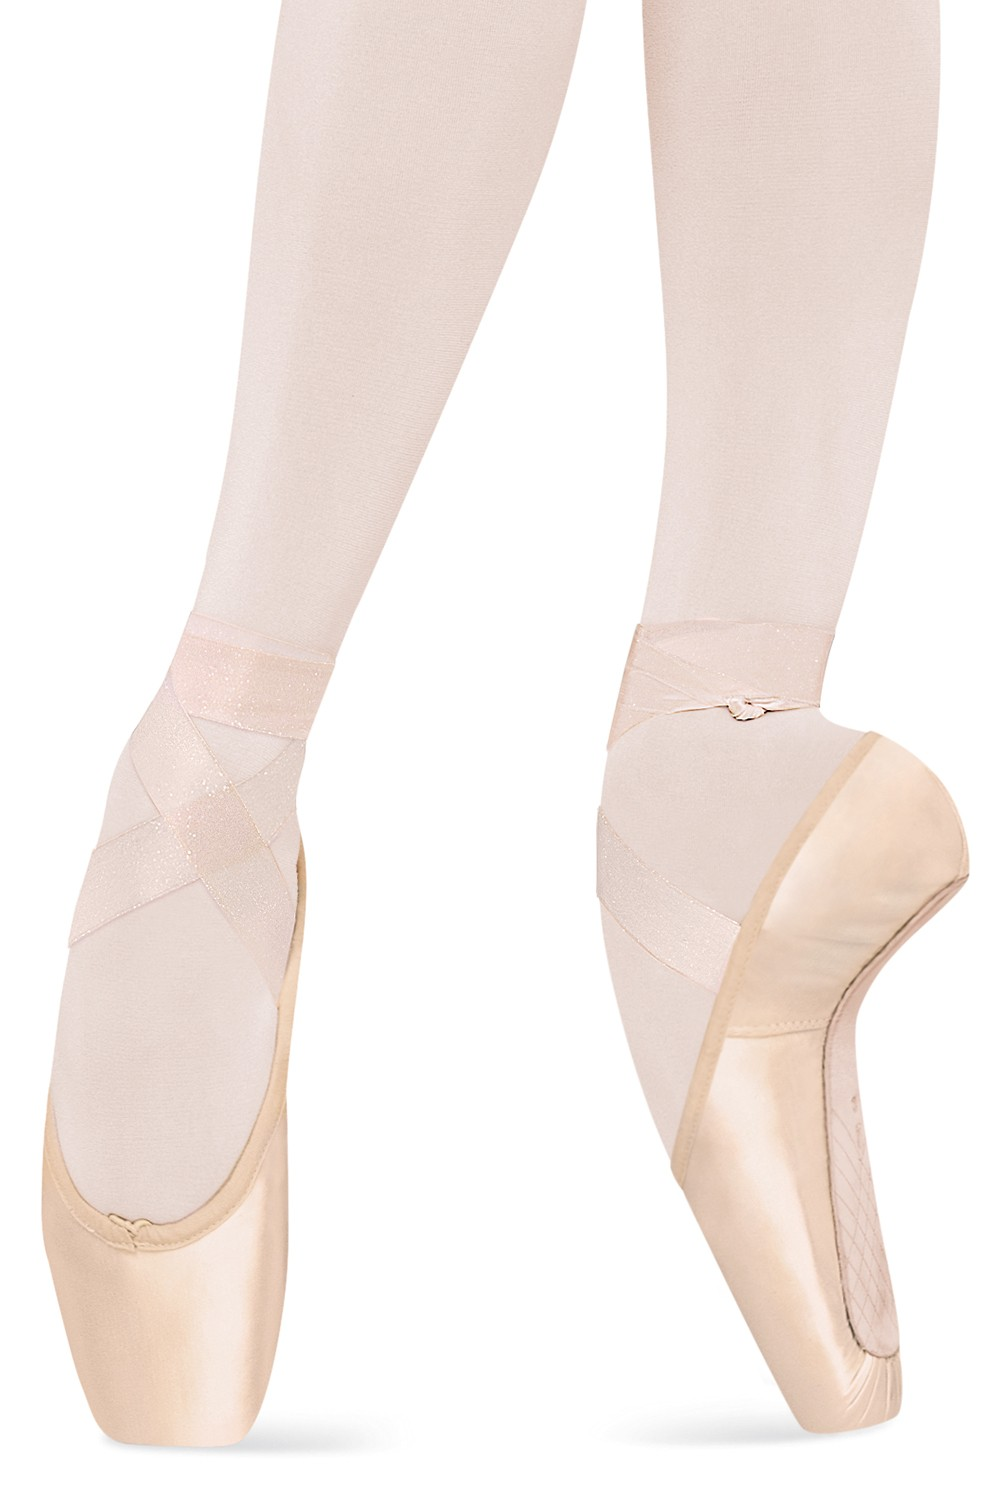 Nastro Elasticizzato Trasparente Dance Shoes Accessories